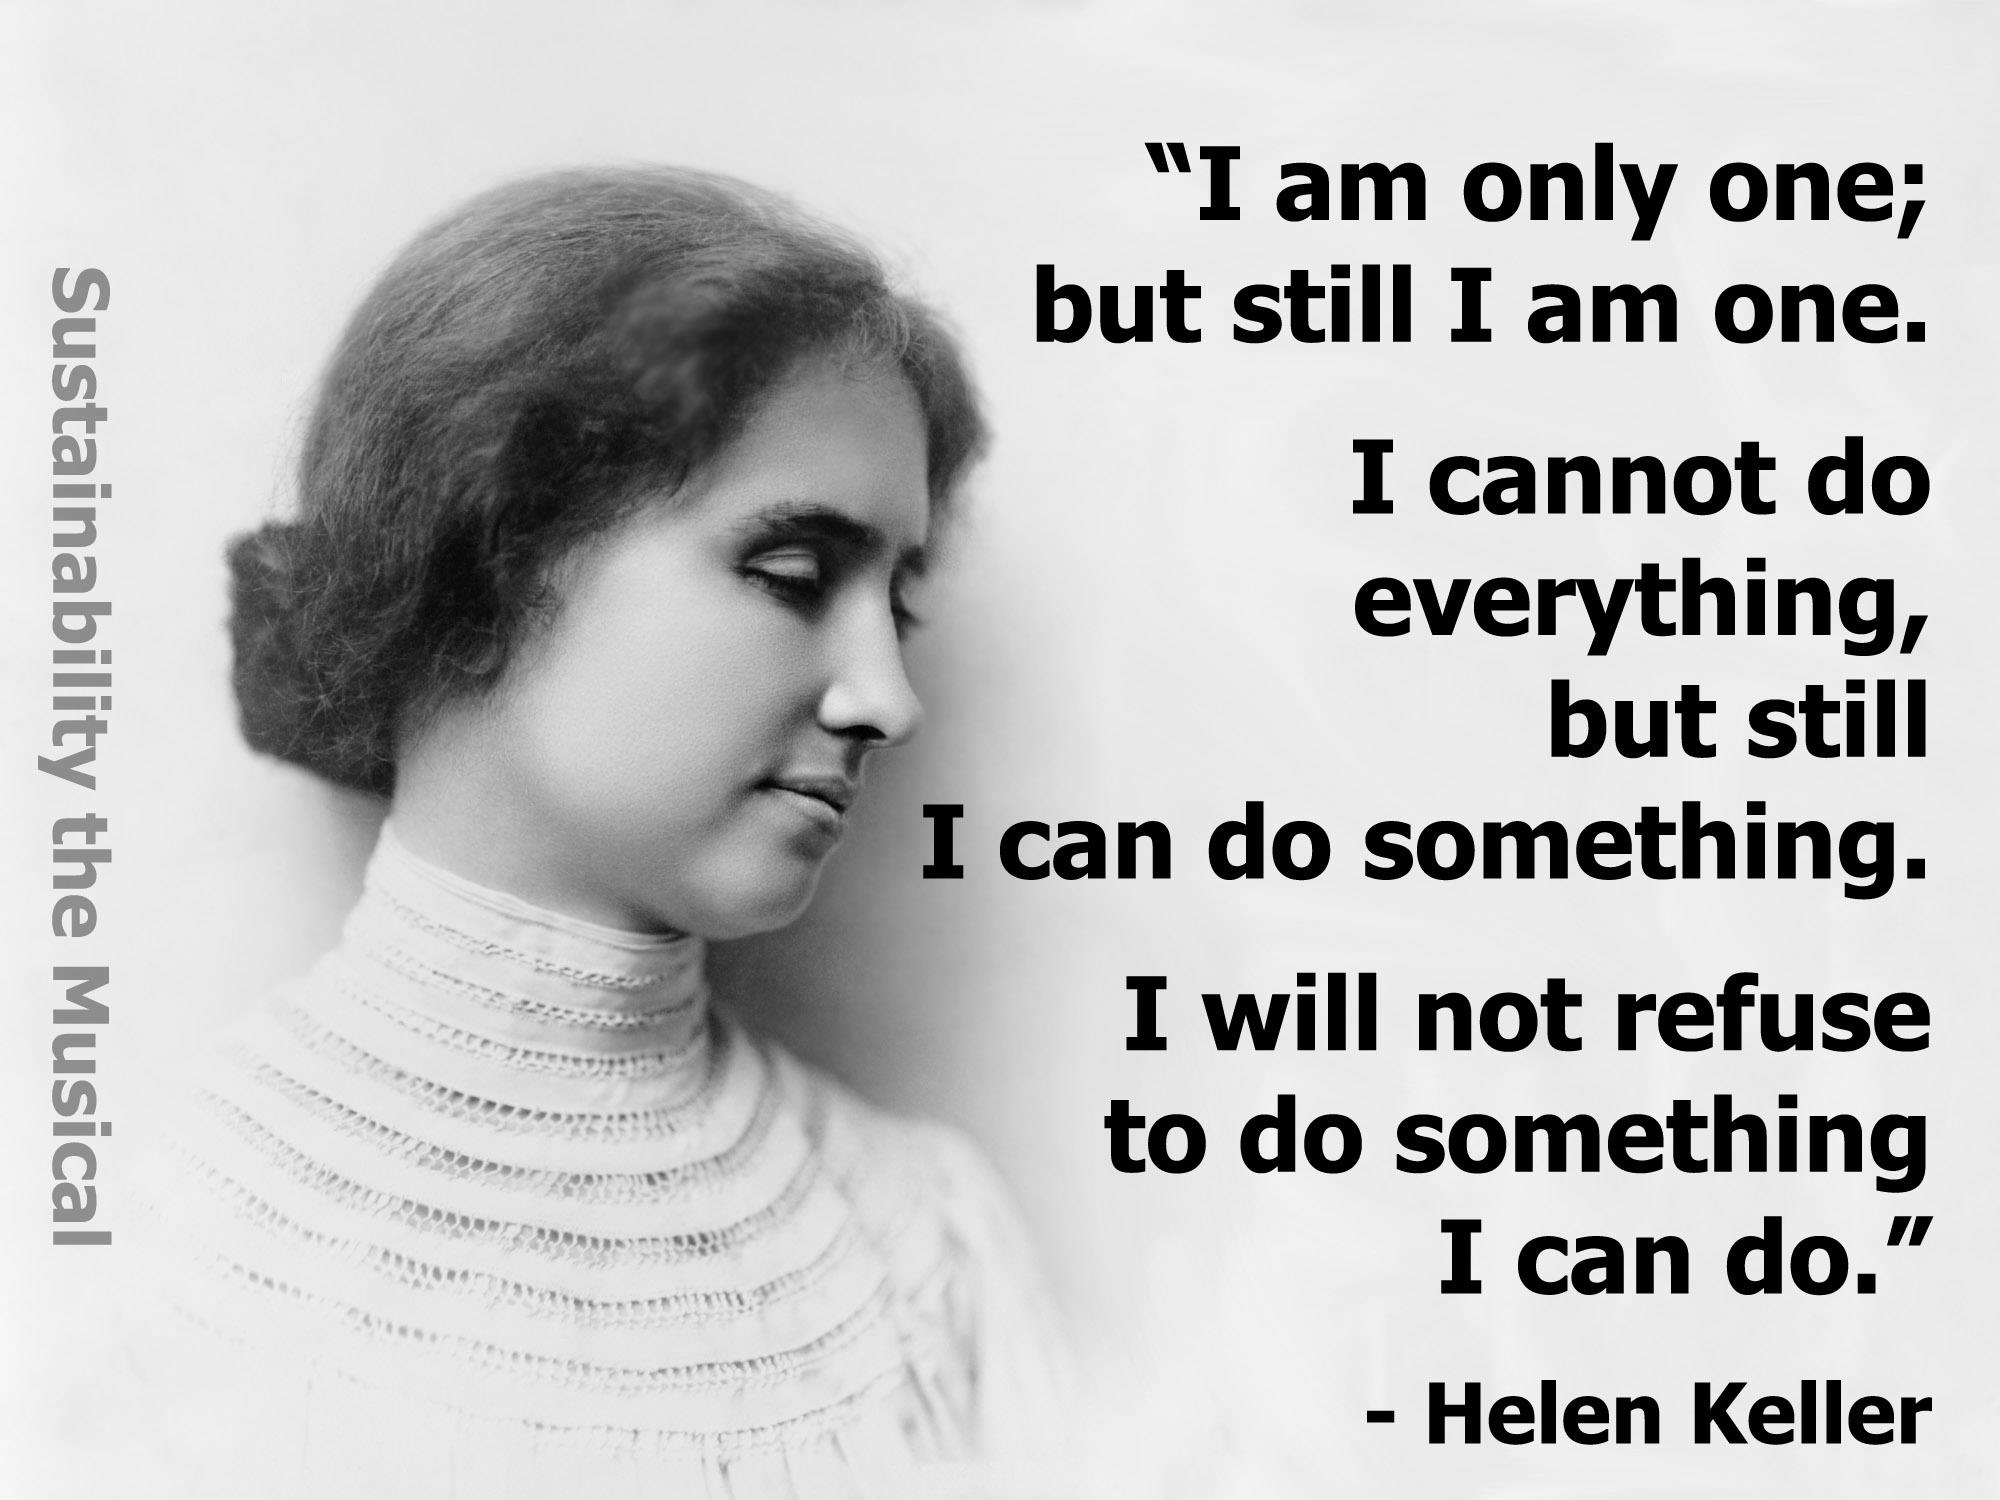 Helen Keller S Quotes Famous And Not Much